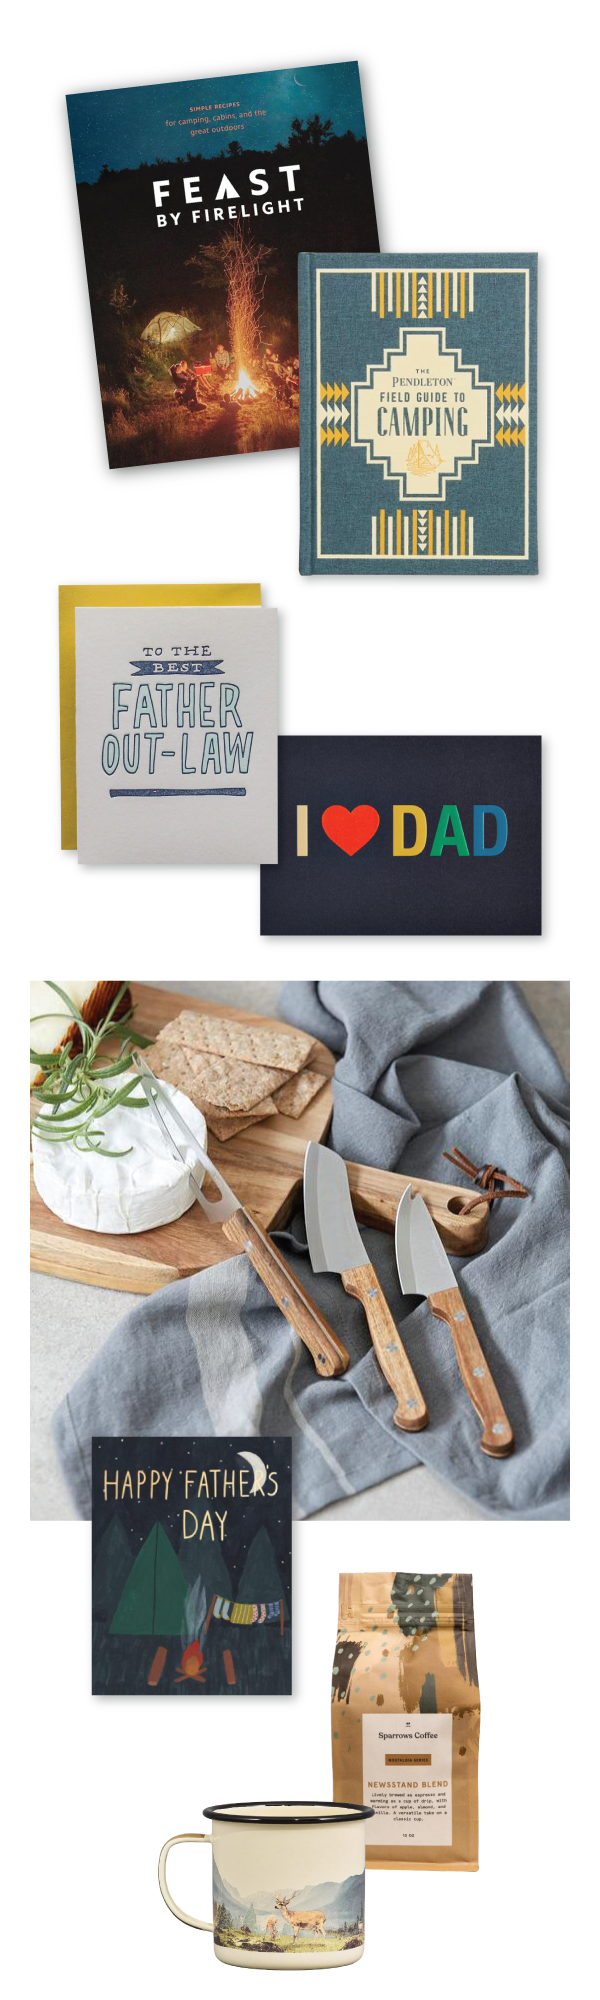 Urbanic Father's Day Cards and Gifts